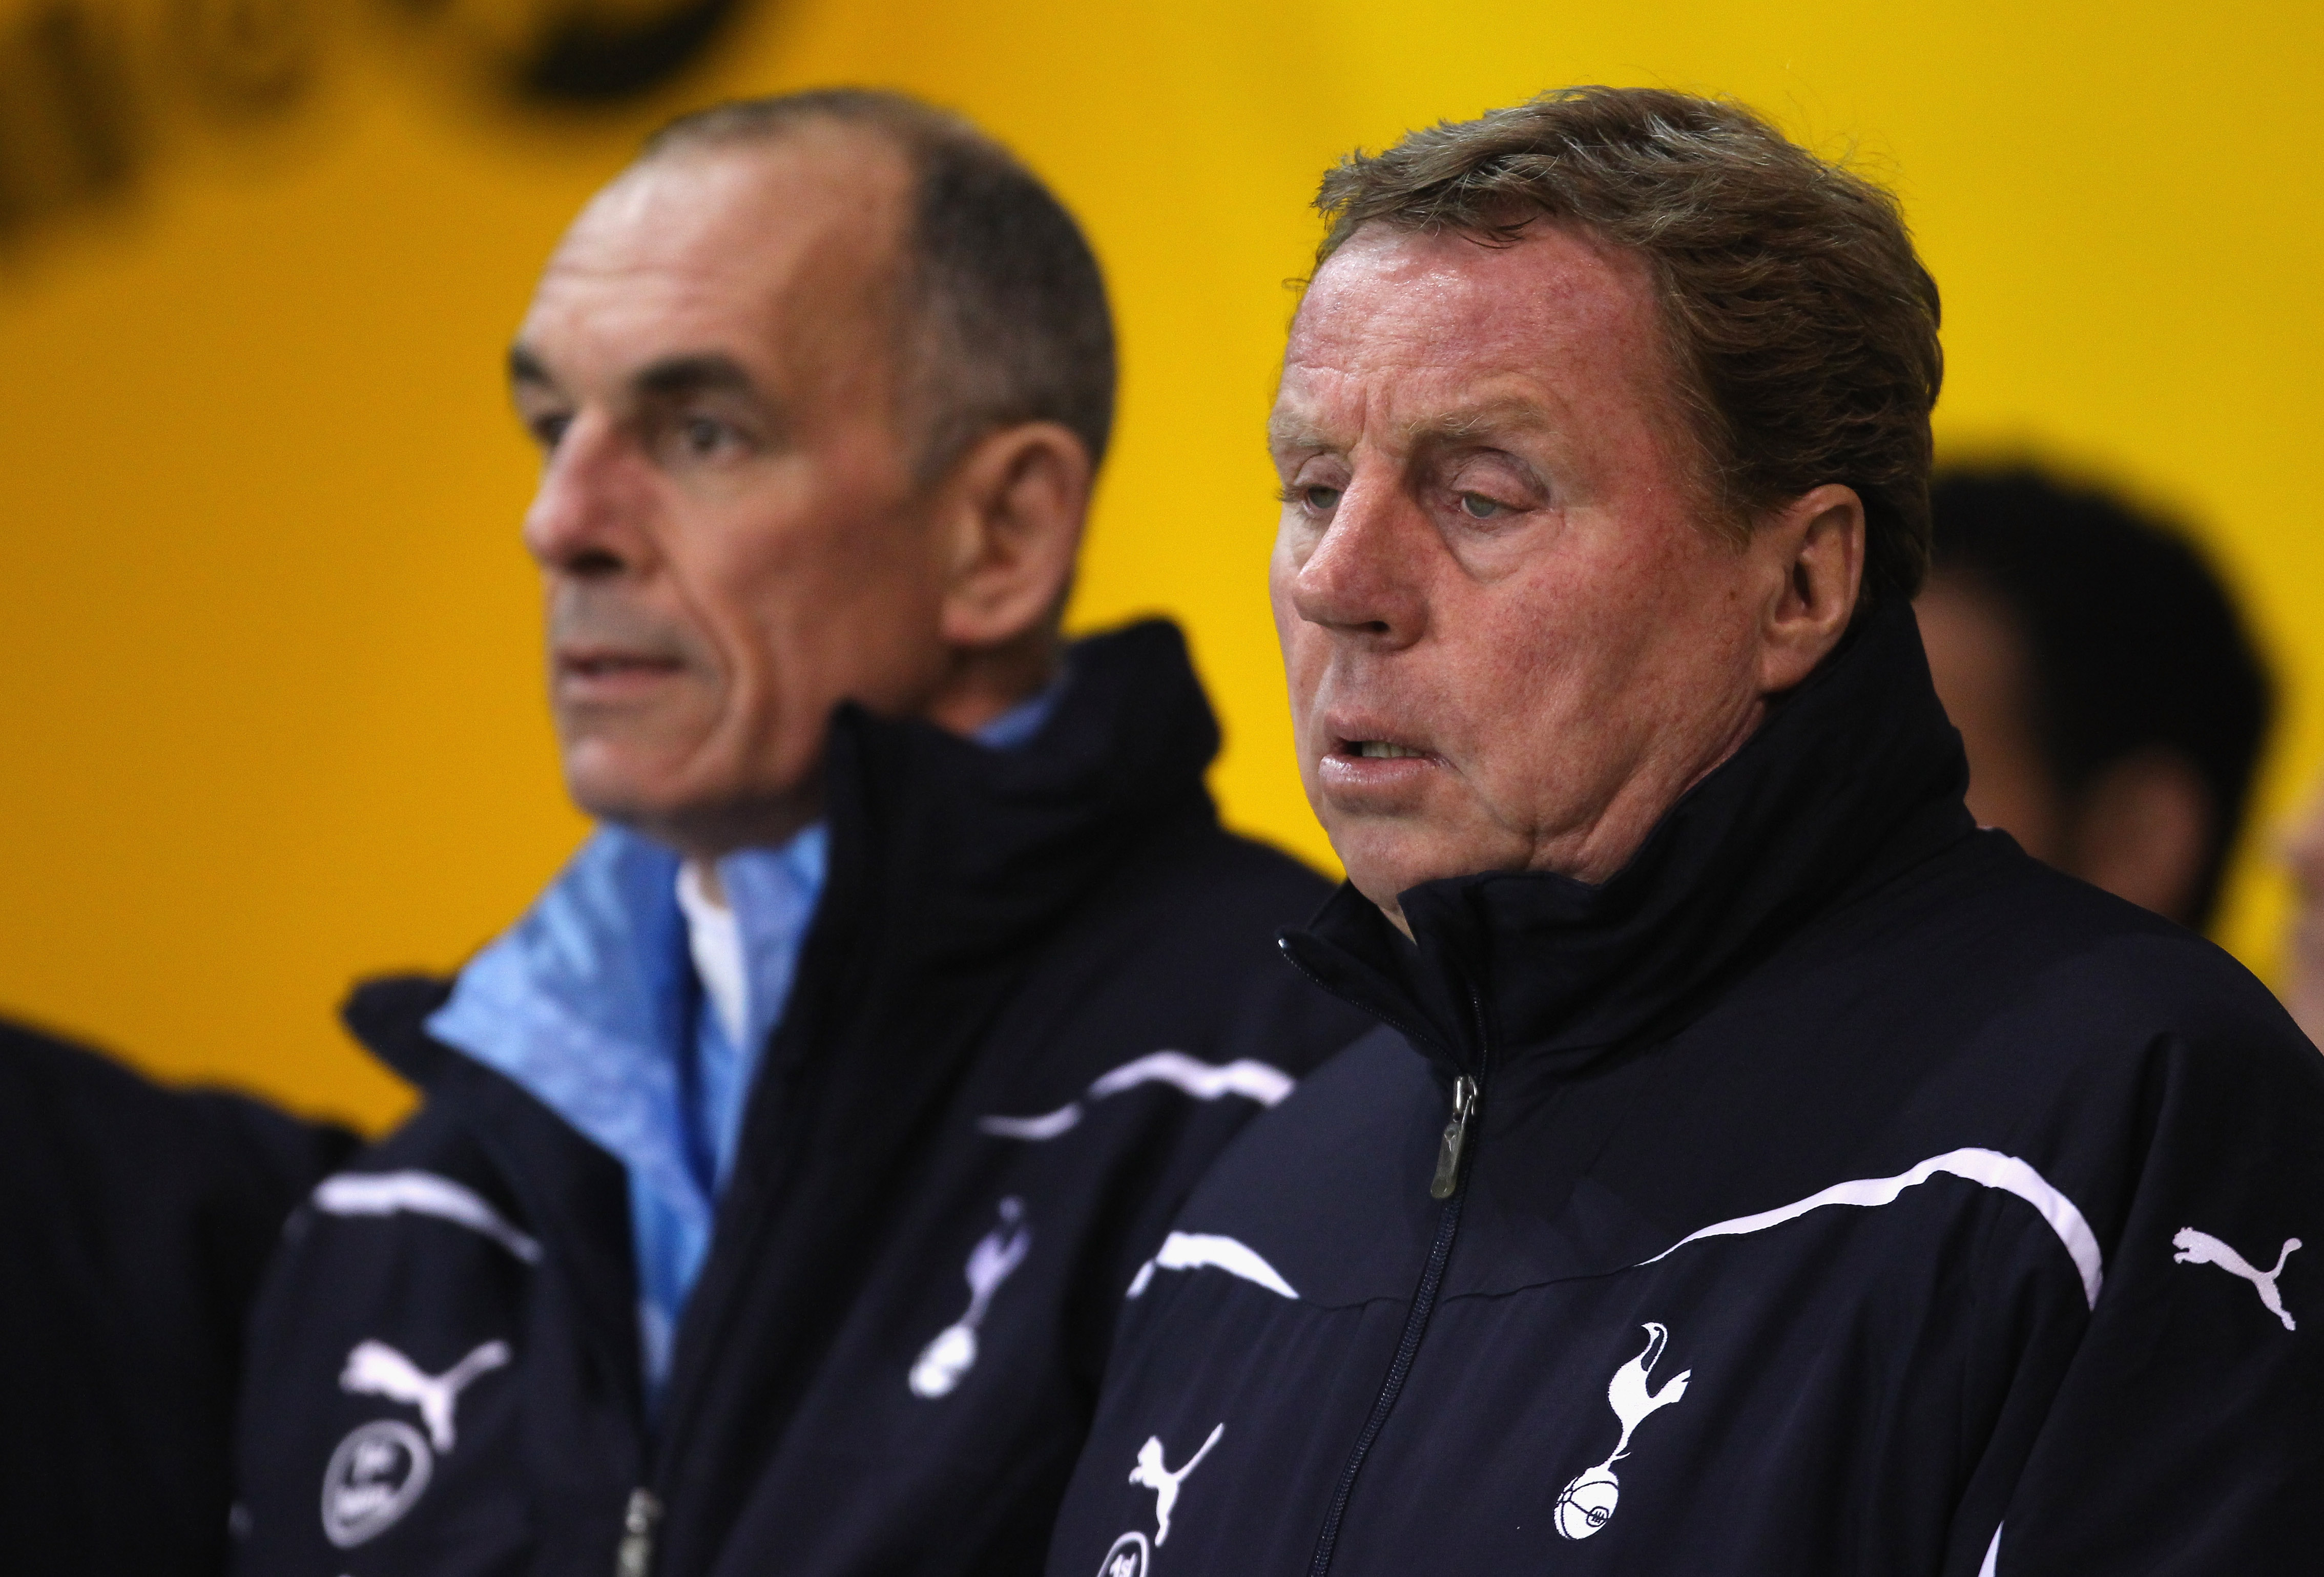 BLACKPOOL, ENGLAND - FEBRUARY 22:  Harry Redknapp the manager of Tottenham Hotspur looks on during the Barclays Premier League match between Blackpool and Tottenham Hotspur at Bloomfield Road on February 22, 2011 in Blackpool, England.  (Photo by Alex Liv